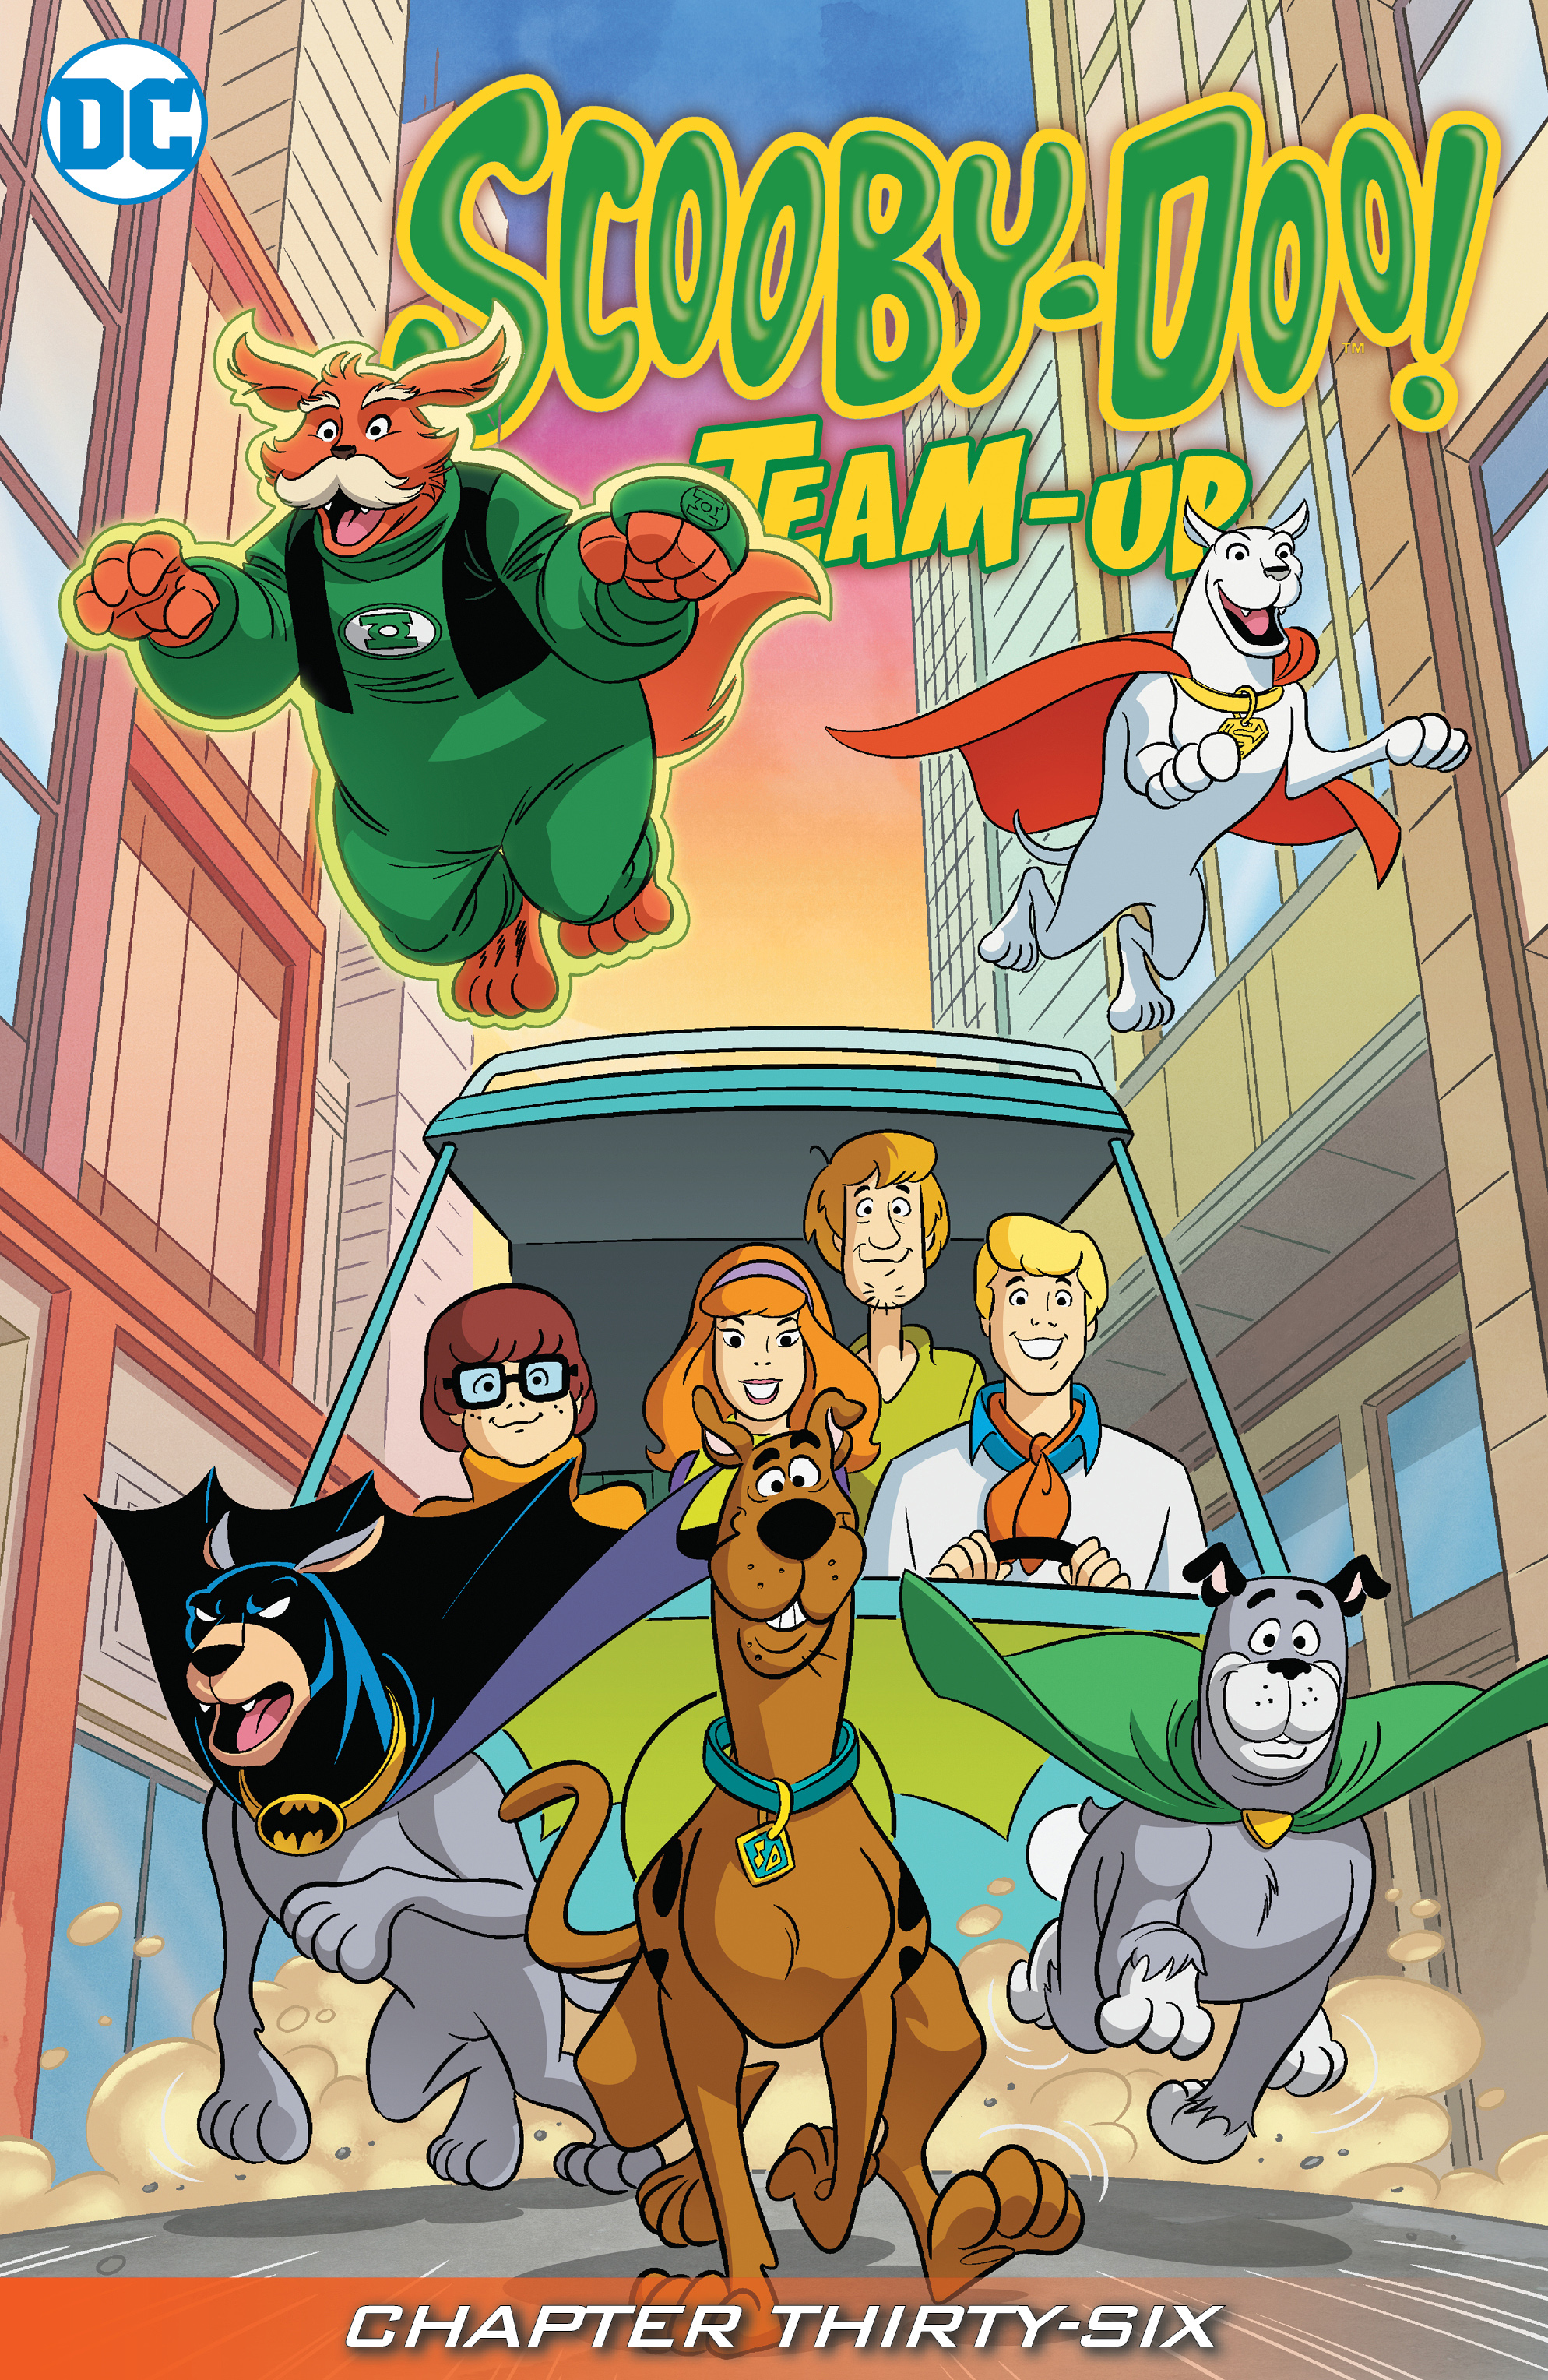 Read online Scooby-Doo! Team-Up comic -  Issue #36 - 2